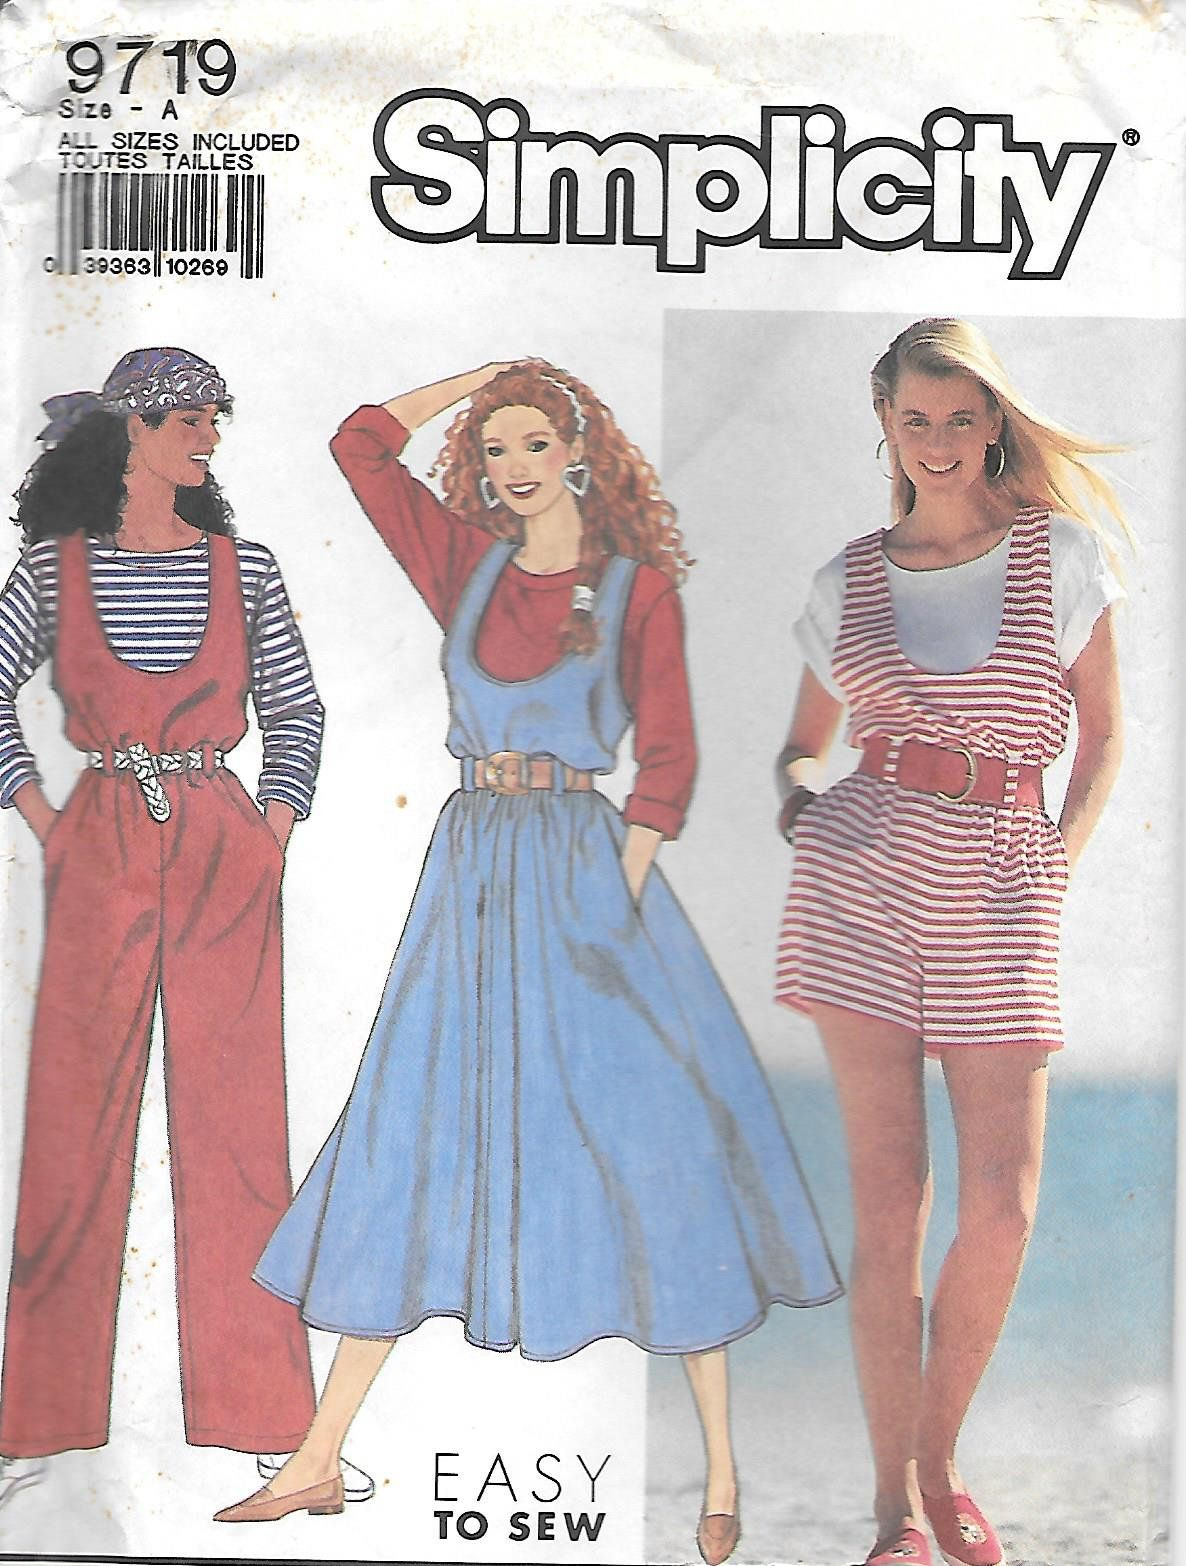 1990s Simplicity 9719 Easy To Sew T Shirt Jumper Jumpsuit And Romper Vintage Sewing Pattern Xxs To L Uncut Ff Sewing Dresses Jumpsuits And Romper Sewing Clothes